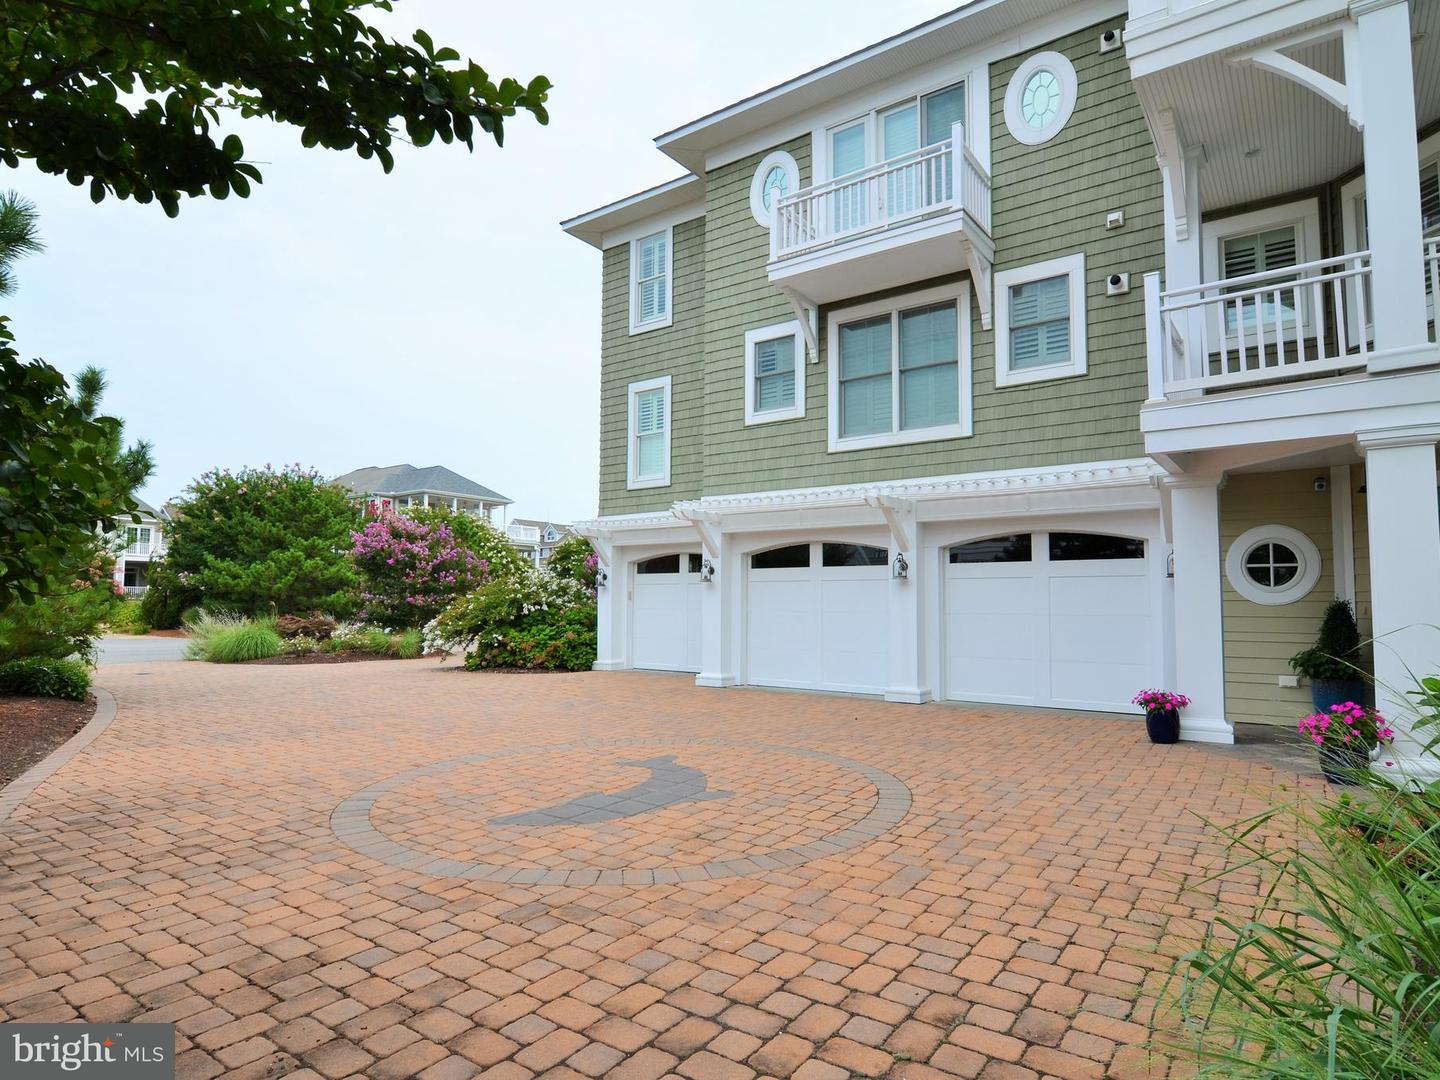 1002293530-300500805889-2018-09-25-15-08-24 31 Hall Ave | Rehoboth Beach, DE Real Estate For Sale | MLS# 1002293530  - 1st Choice Properties